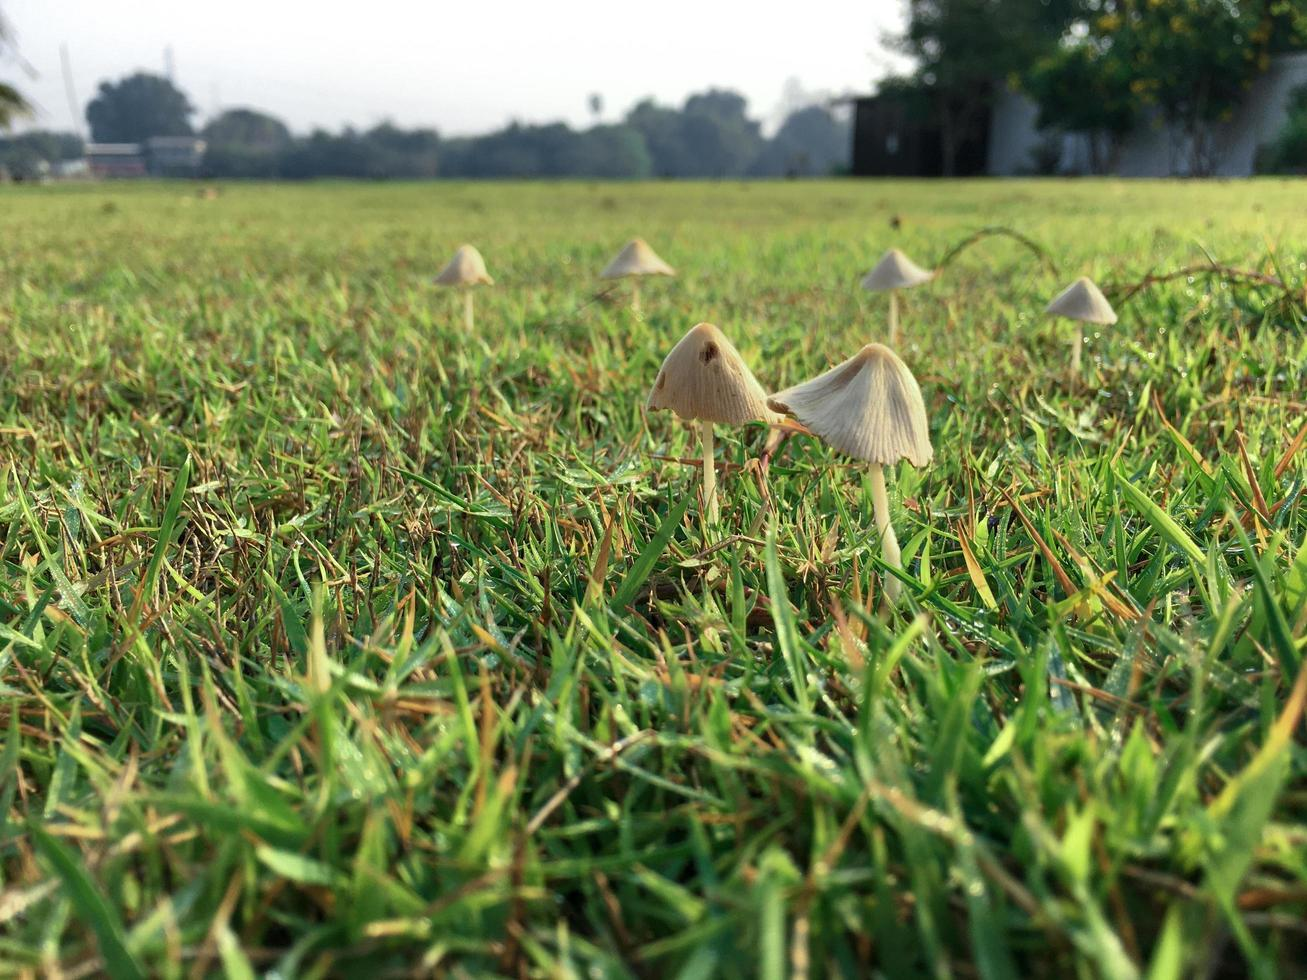 Selective focus on the mushrooms grow from the grass field at the backyard photo